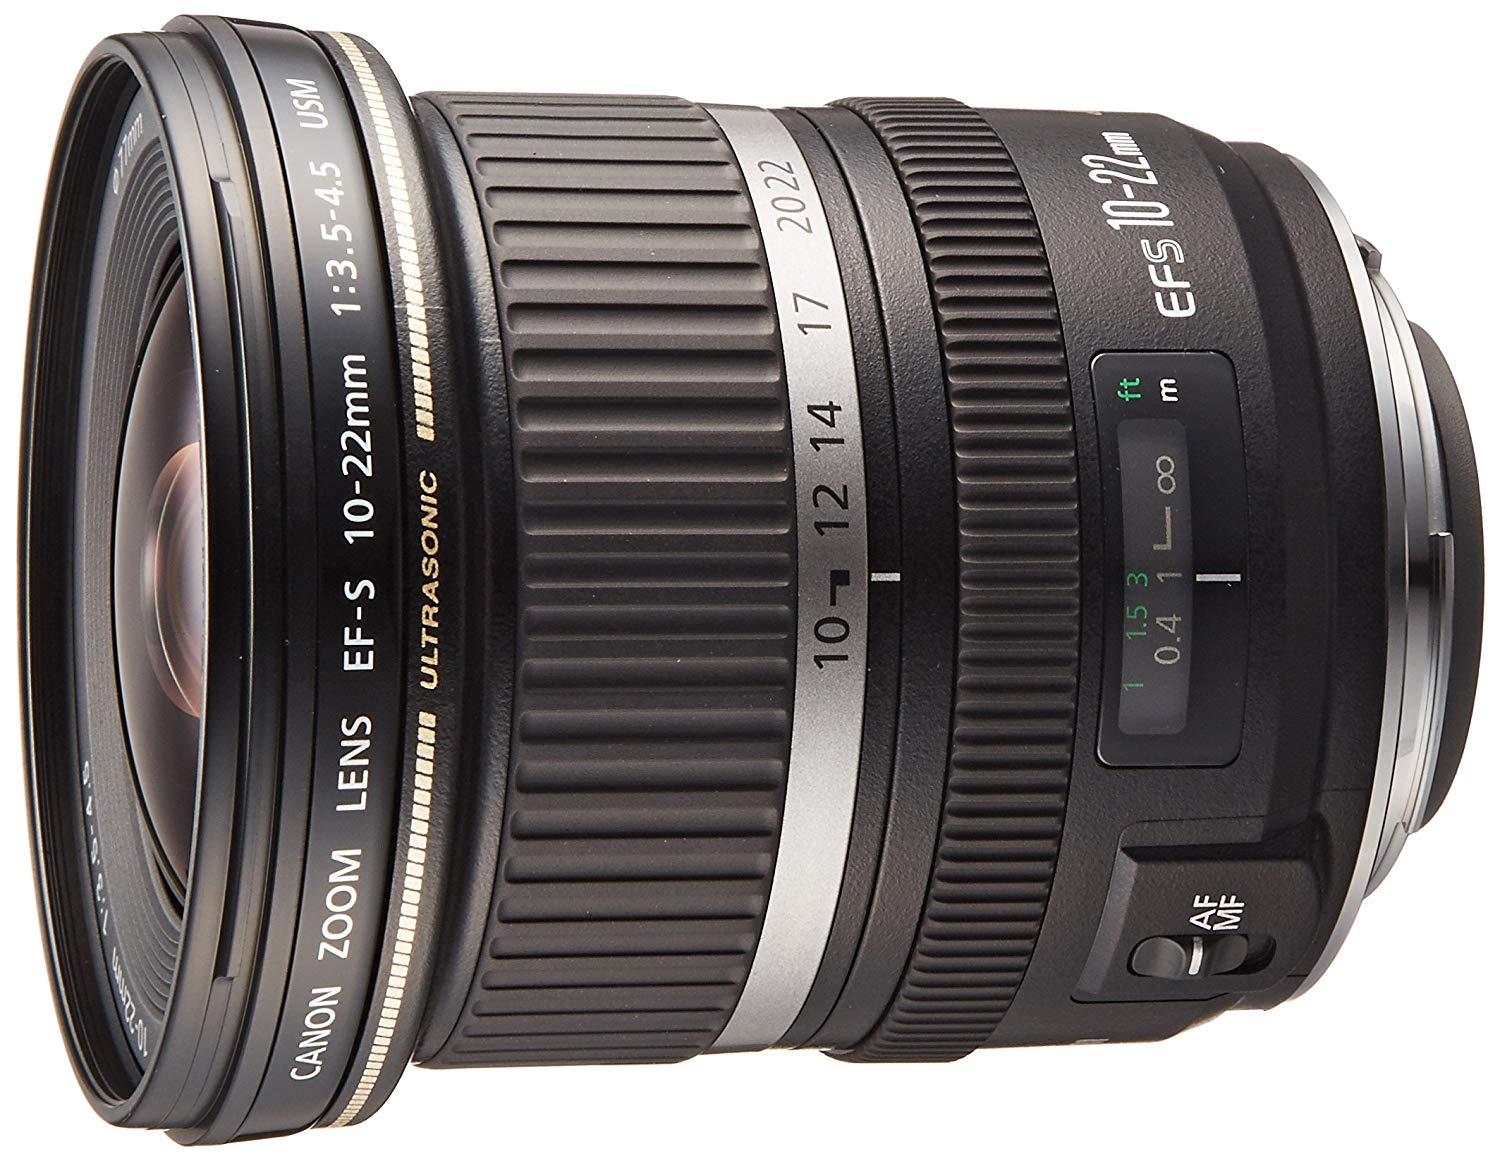 Canon EF-S 10-22mm f/3.5-4.5 USM SLR Lens - Buy on Amazon.com